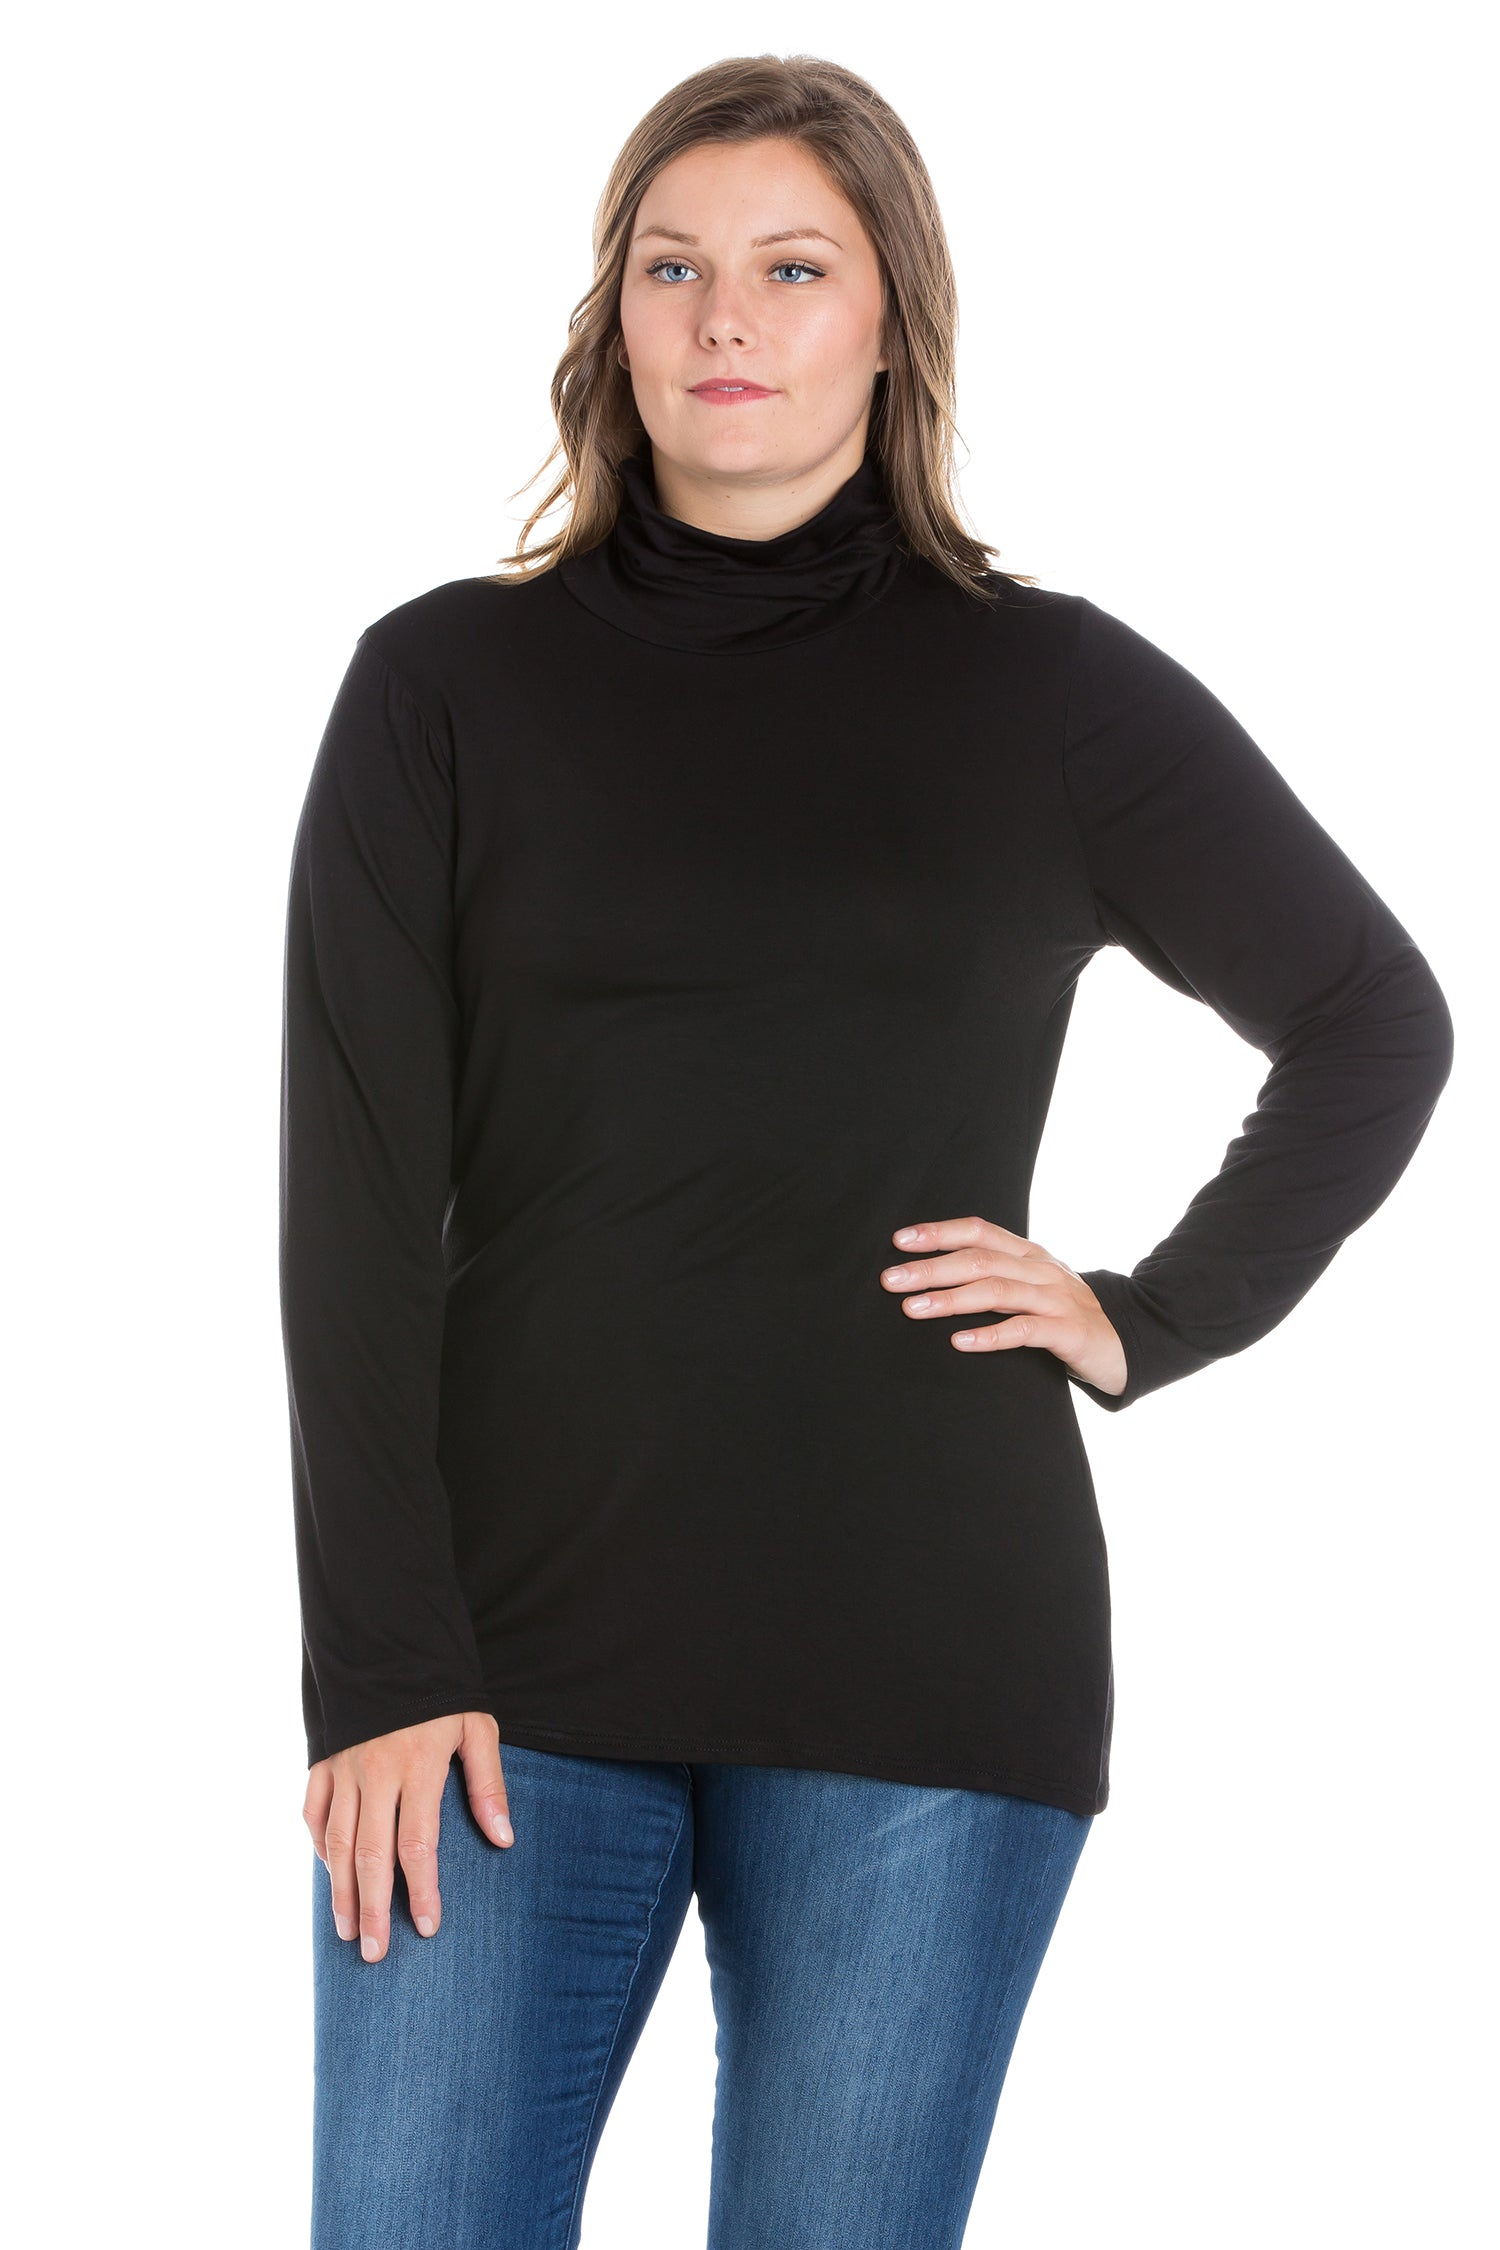 24seven Comfort Apparel Classic Womens Plus Size Long Sleeve Turtleneck-TOPS-24Seven Comfort Apparel-BLACK-1X-24/7 Comfort Apparel